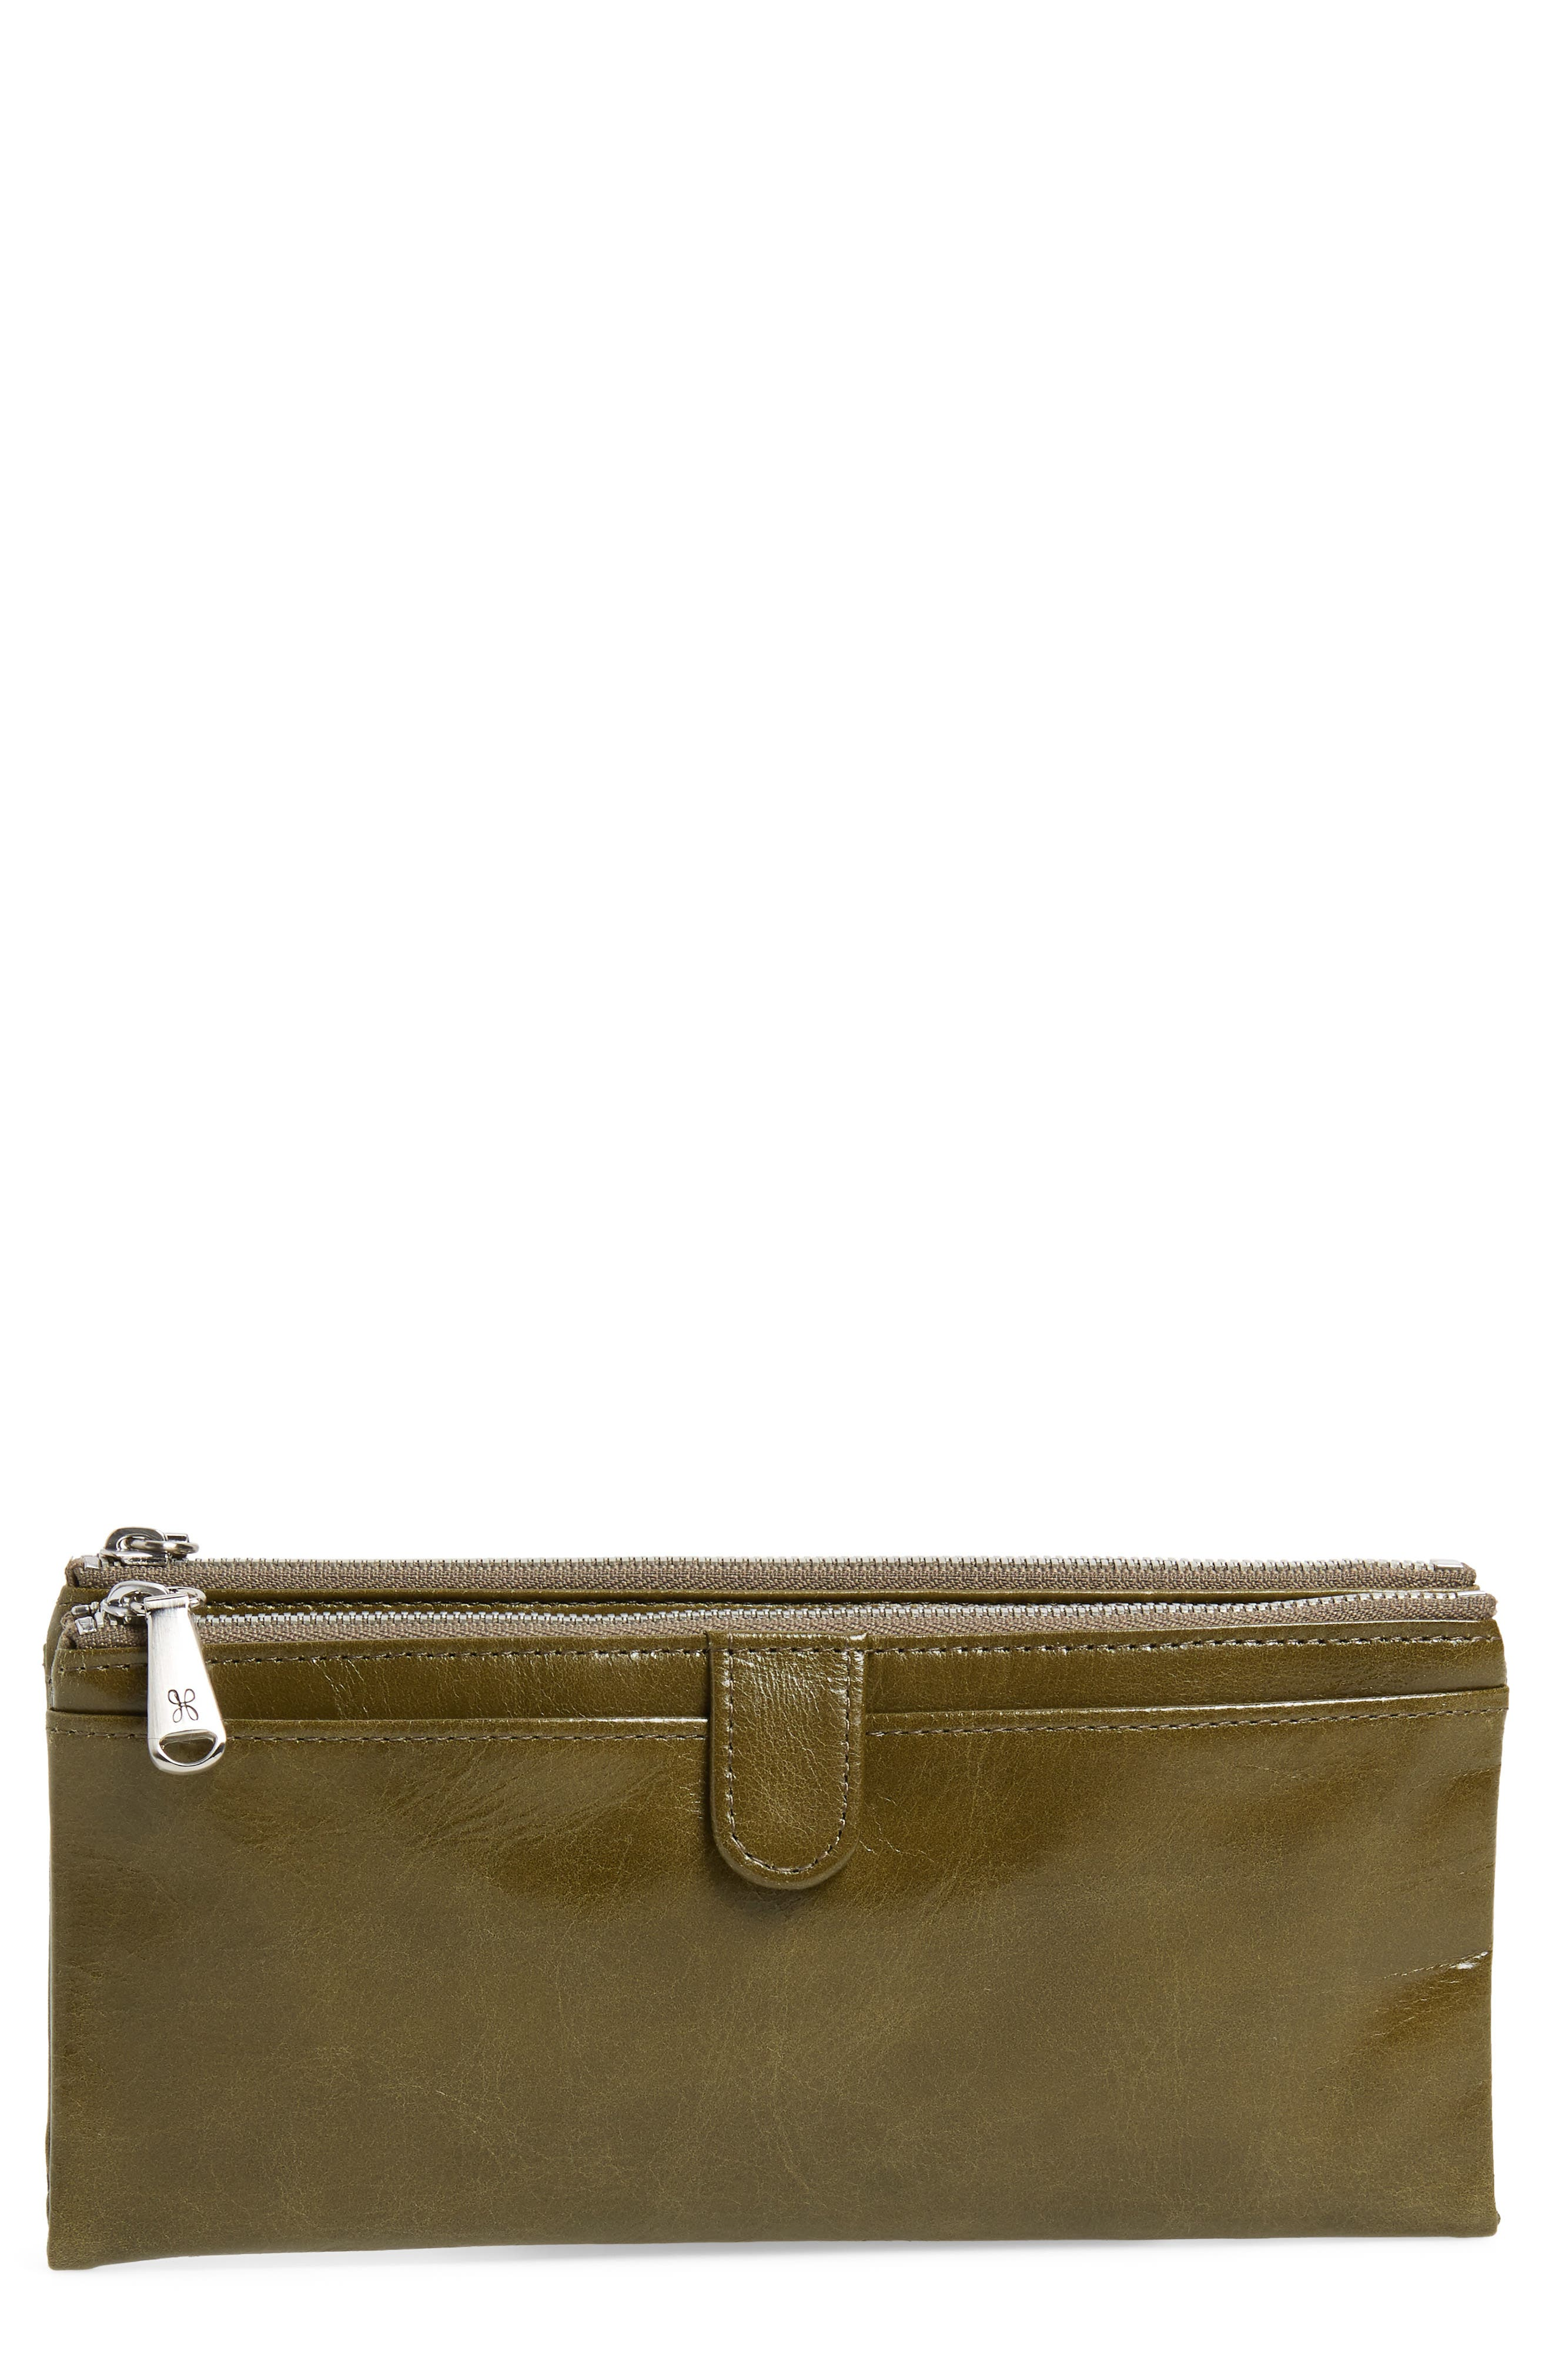 Taylor Glazed Wallet,                             Main thumbnail 1, color,                             WILLOW